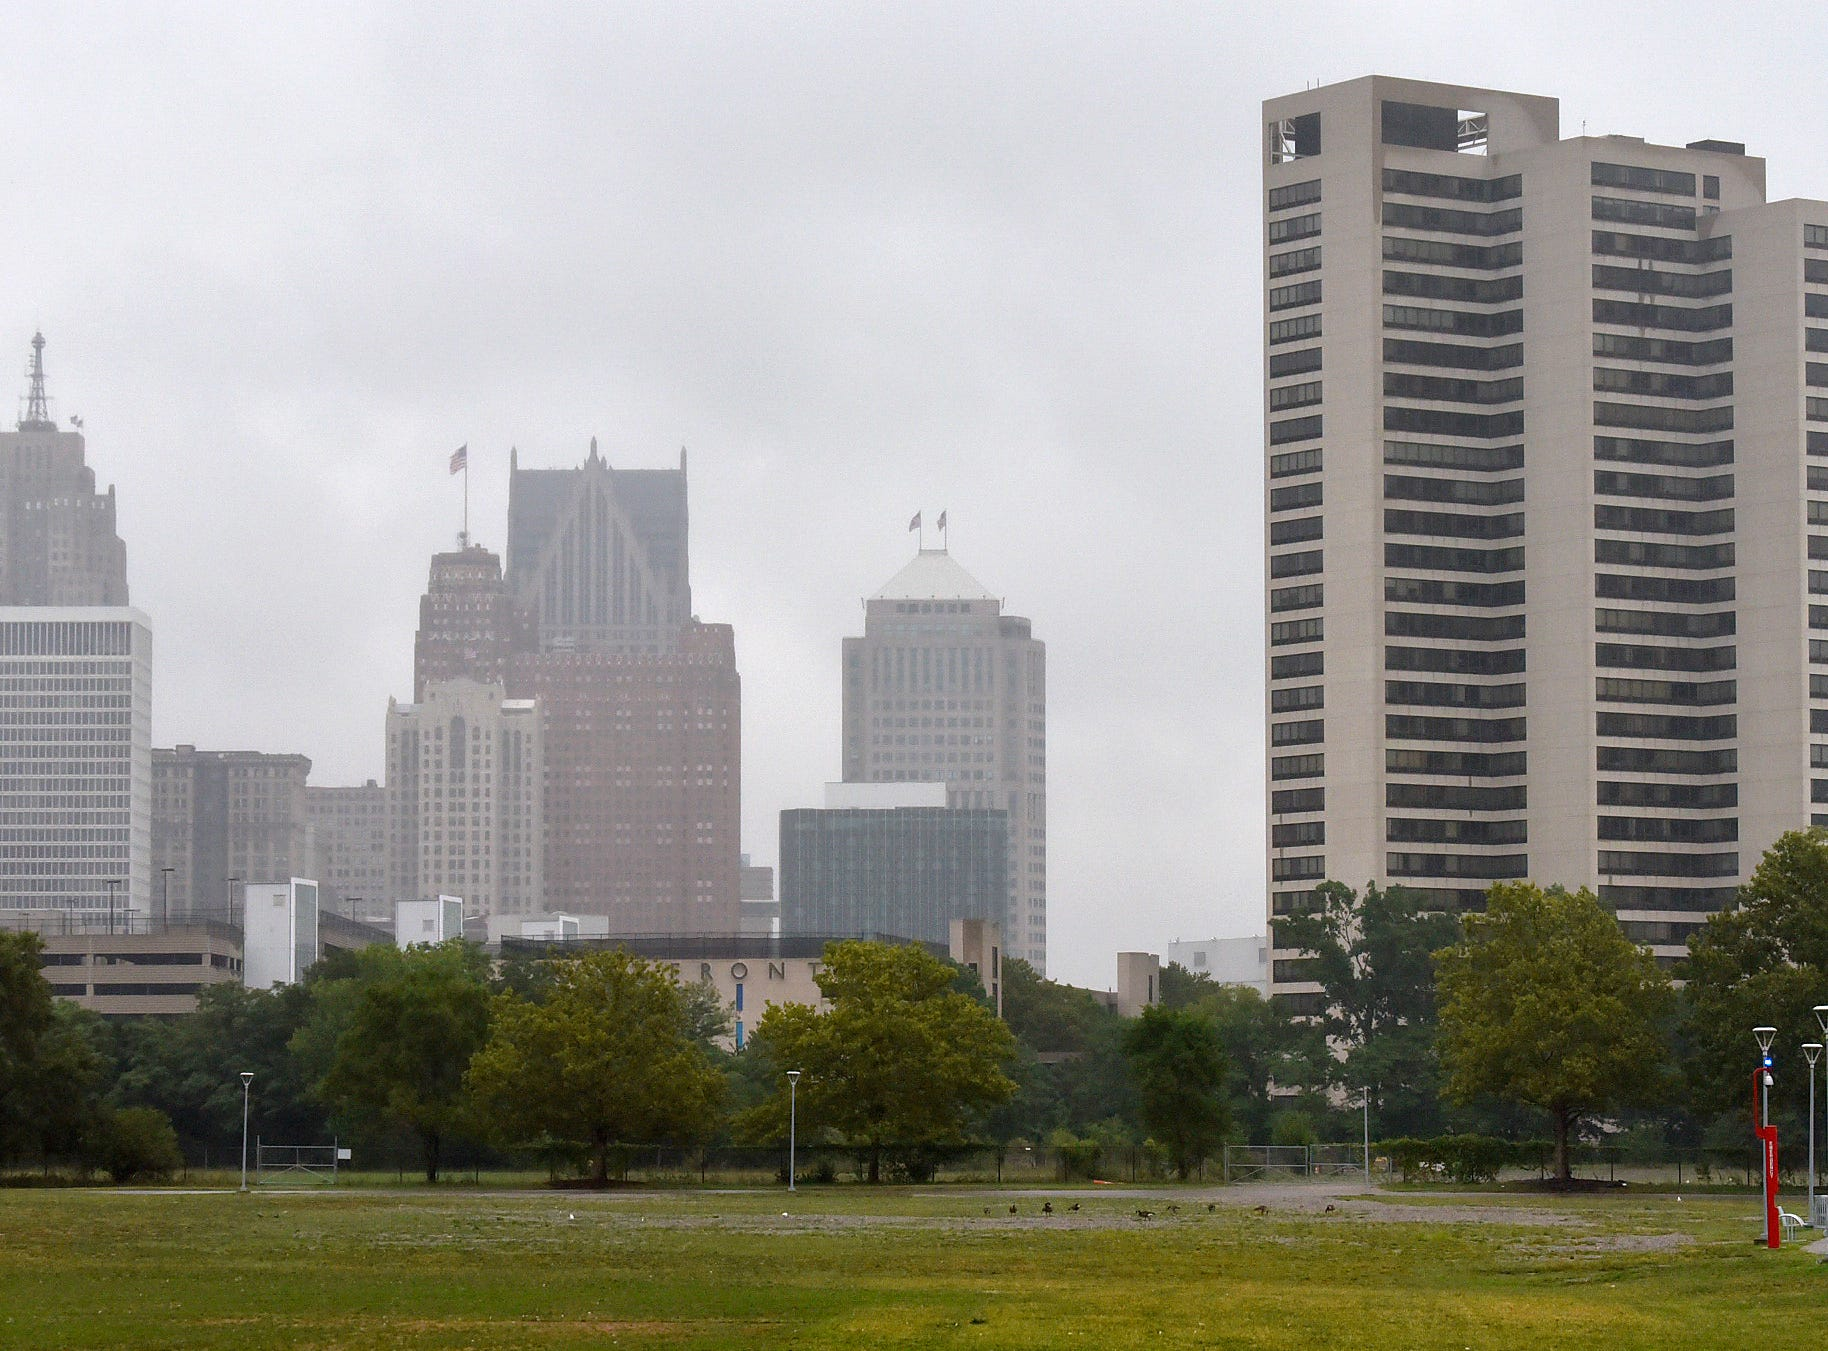 These are the Riverfront Towers where Aretha Franklin lived, August 16, 2018.